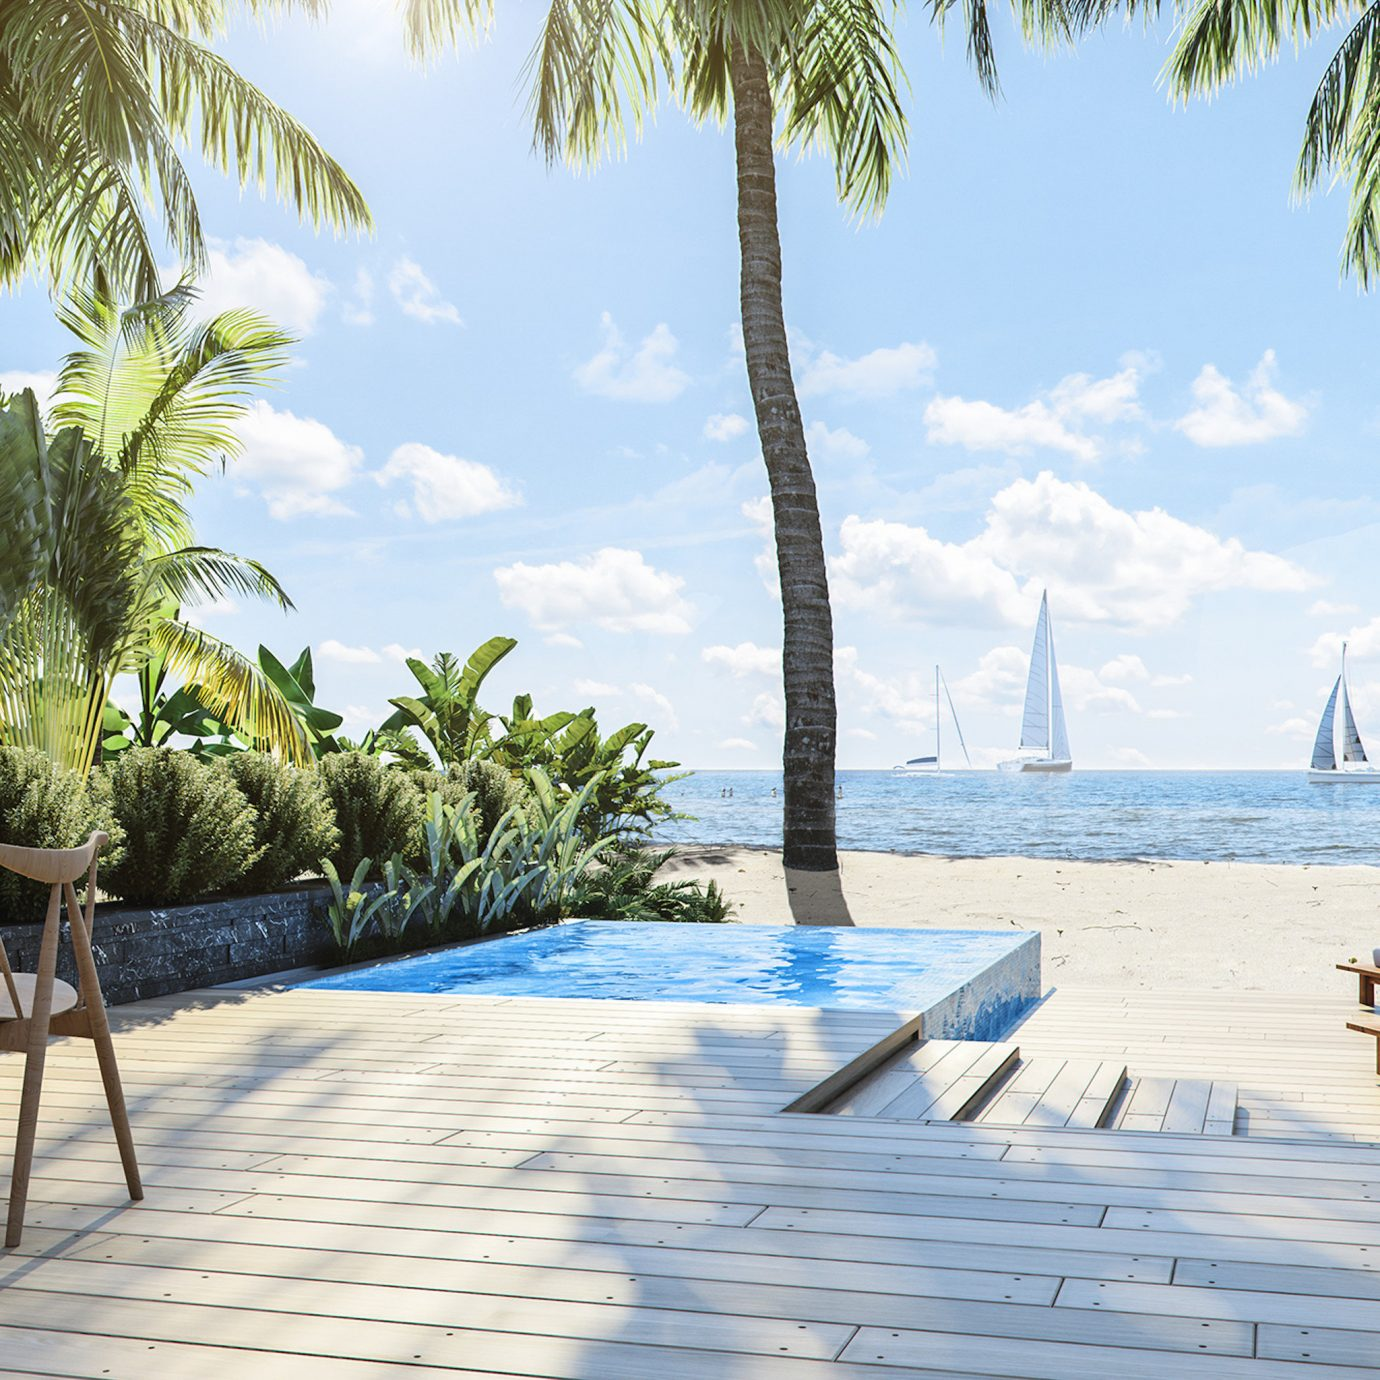 Hotels Trip Ideas Winter tree outdoor sky leisure chair Beach palm Resort property vacation swimming pool estate caribbean arecales plant home Villa walkway Sea lawn Pool bay lined shade shore sunny furniture sandy several